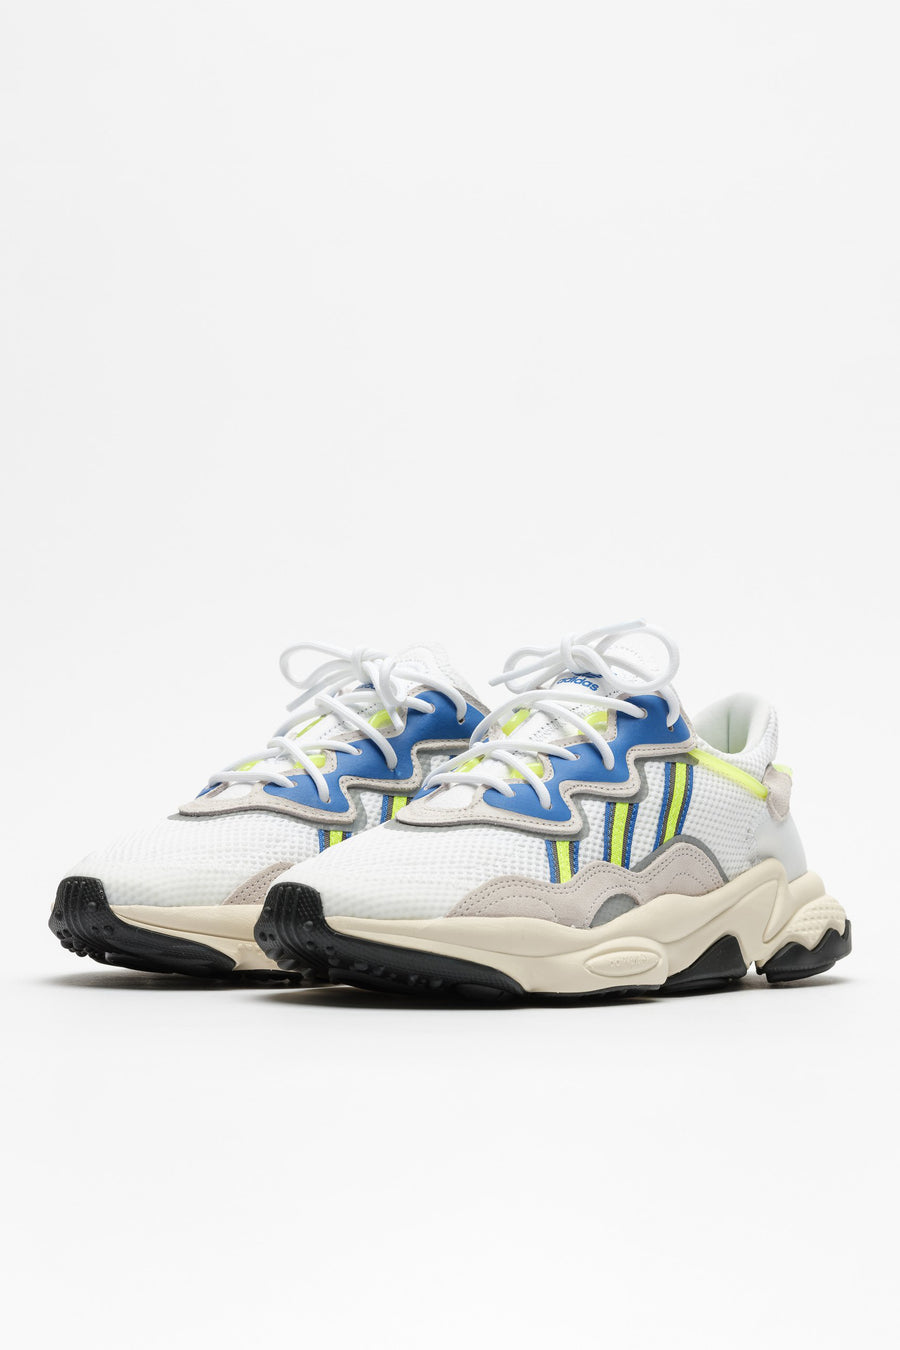 adidas OZWEEGO in White/Grey/Yellow - Notre